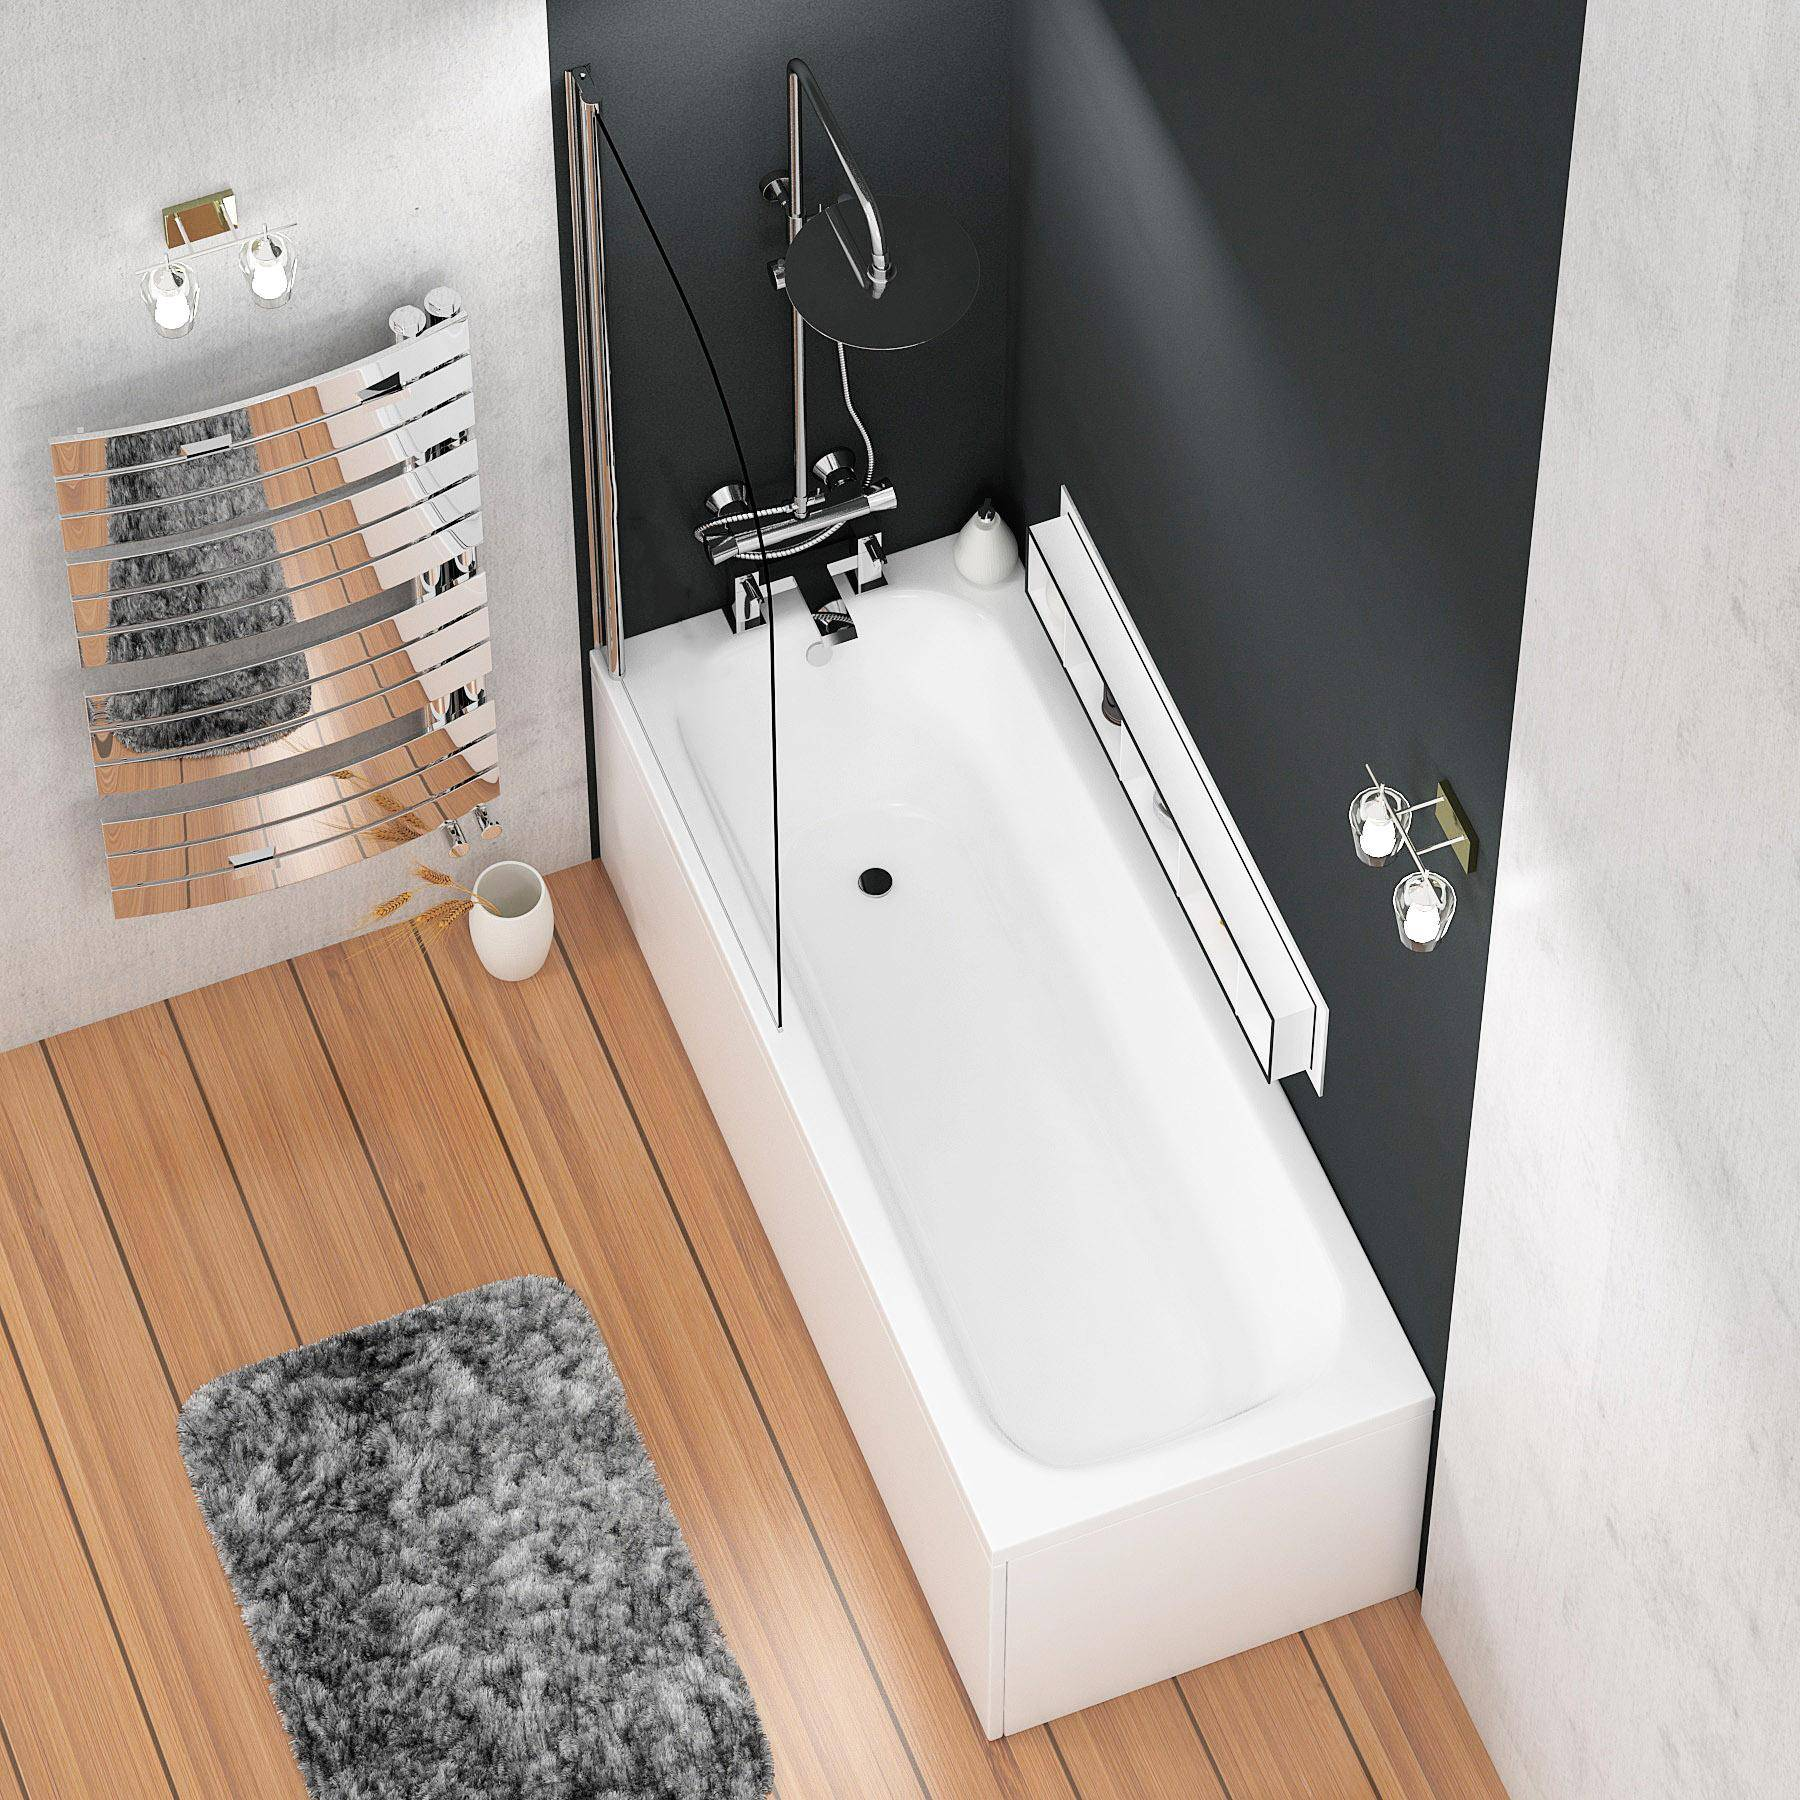 Royal Bathrooms Breeze Round Single Ended Shower Bath 1700 x 750mm Acrylic Inc Shower Bath Screen + Front and End Panel